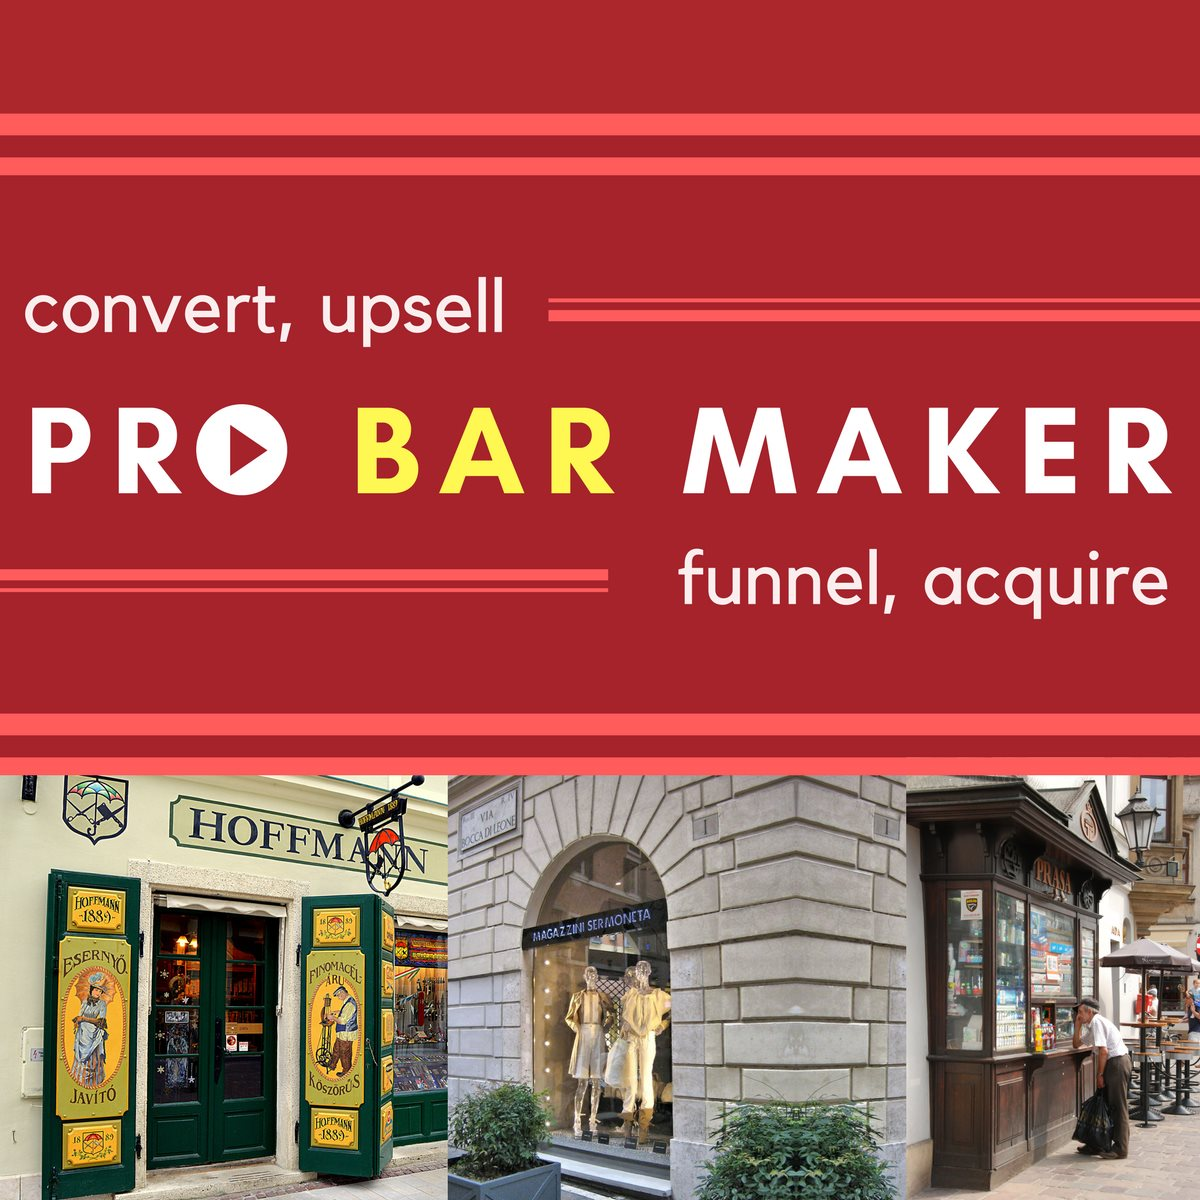 Pro Bar Maker - Shopify App